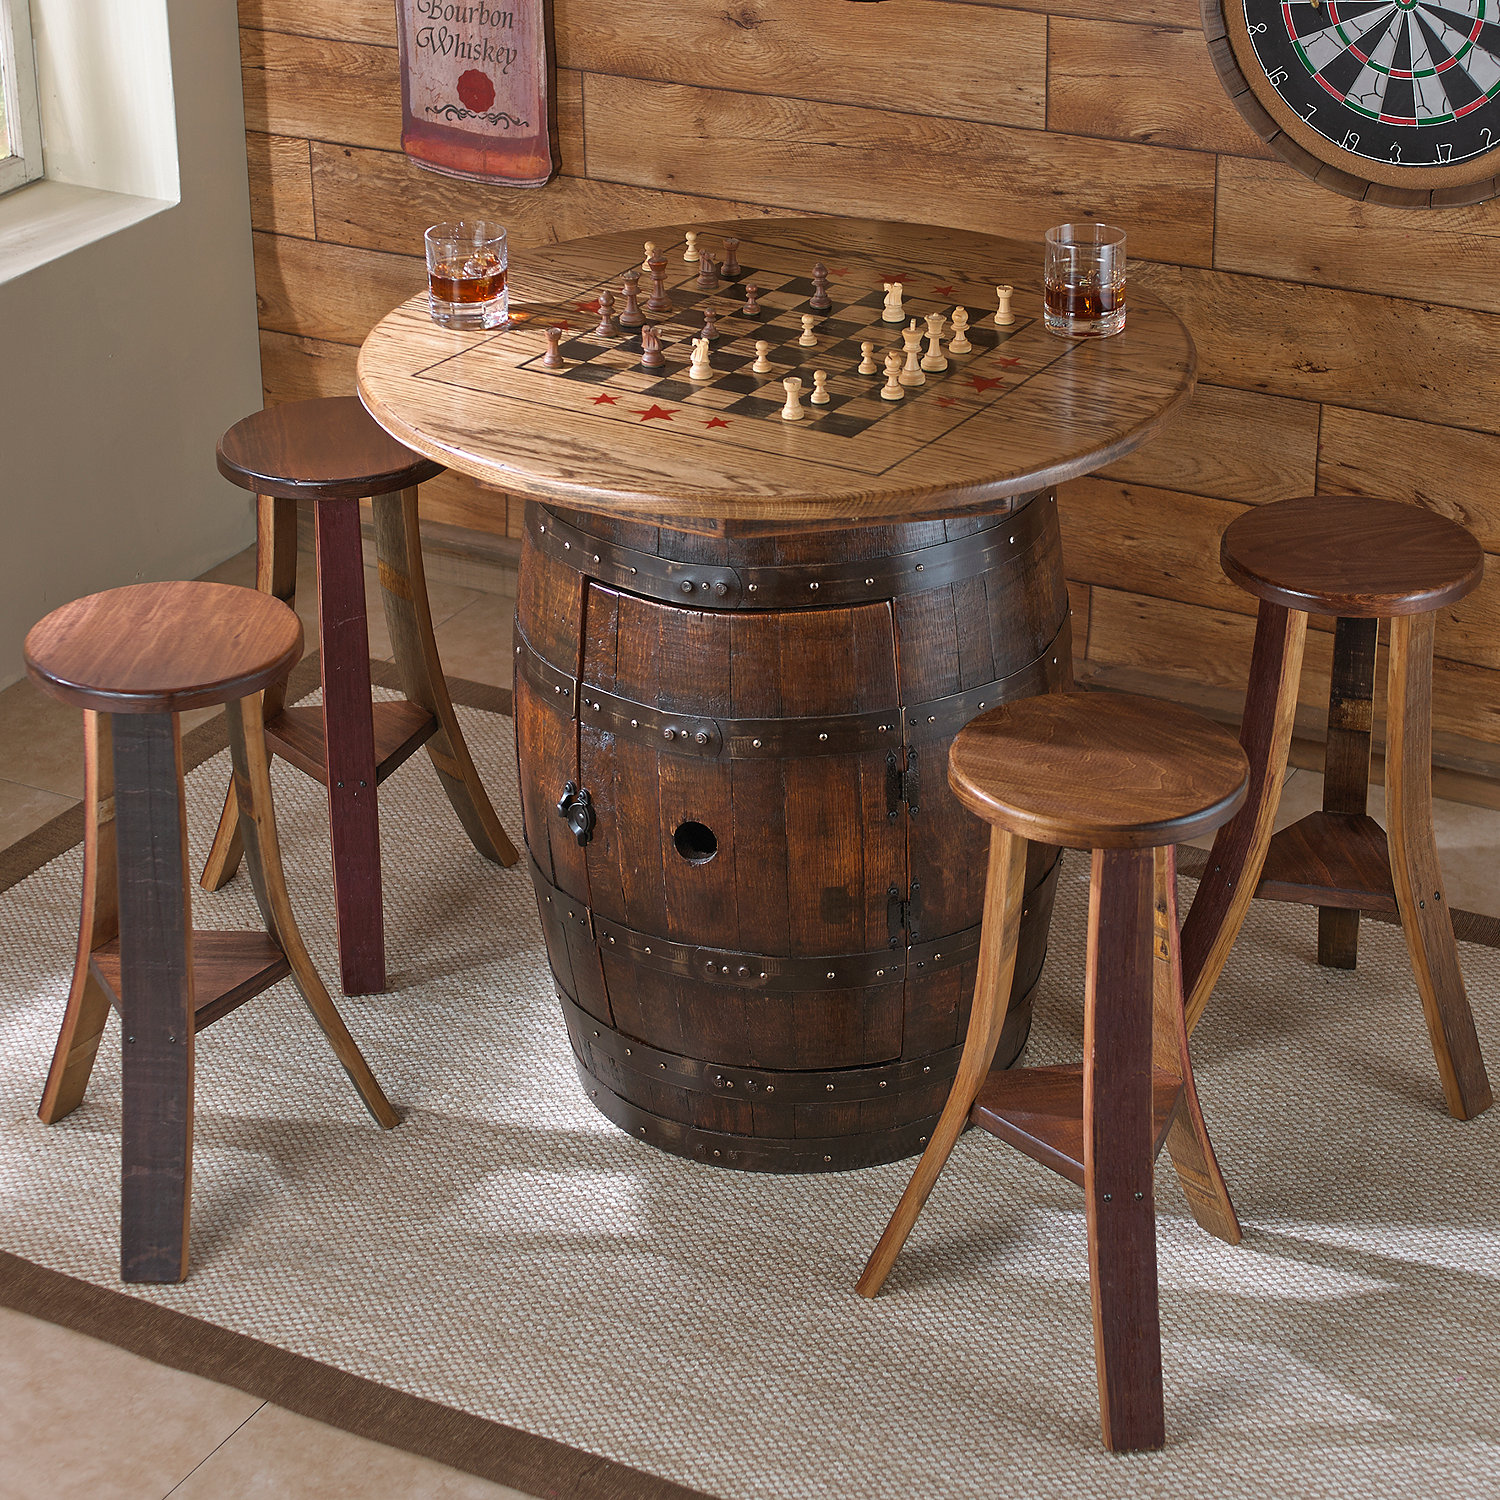 ... Barrel Game Table with 4 Stools. Preparing Zoom & Whiskey Barrel Game Table with 4 Stools - Wine Enthusiast islam-shia.org